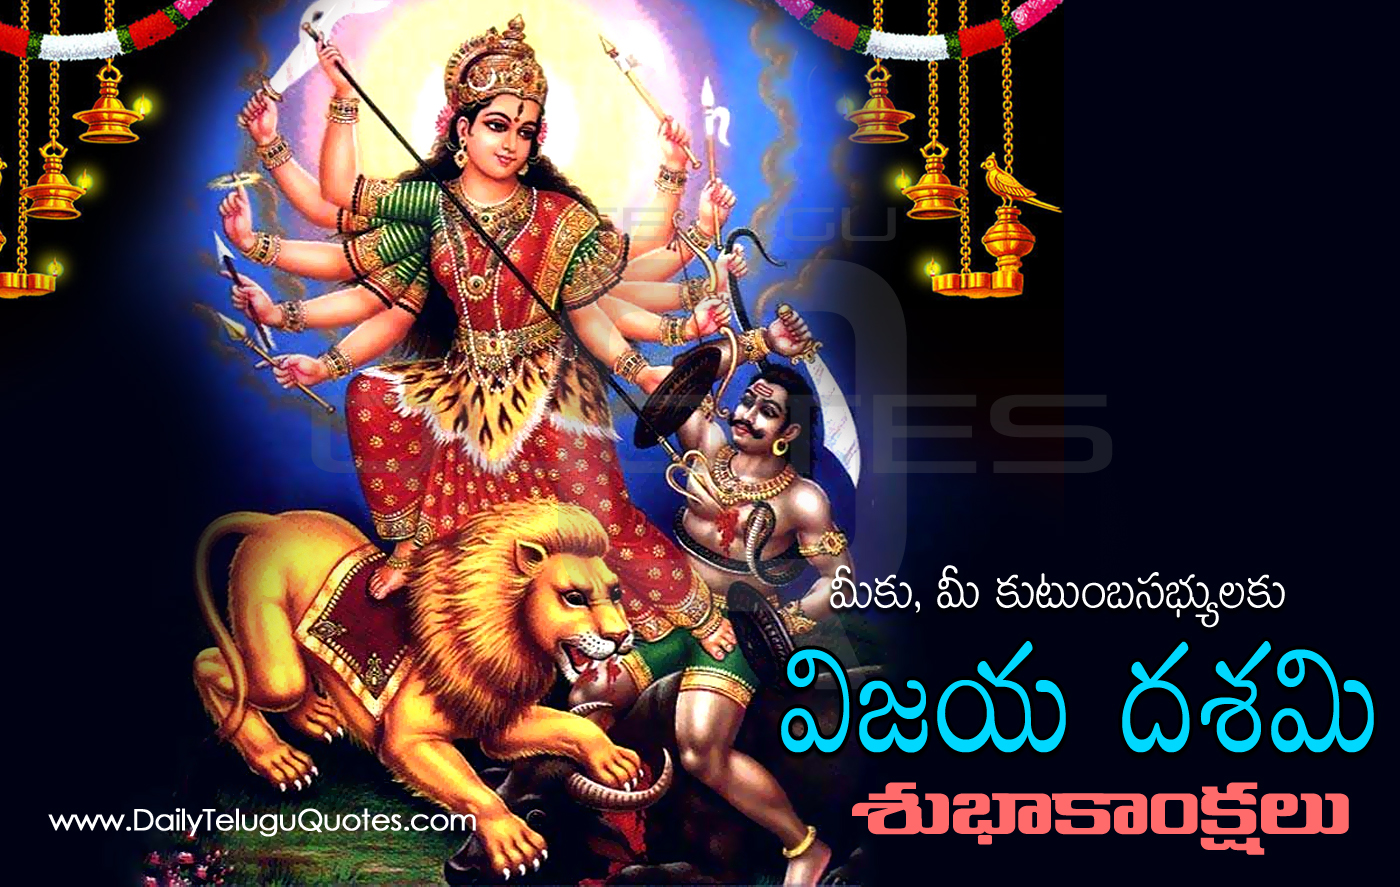 Durga devi images and dussehra quotes and wallpapers greetings 2015 durga devi images and dussehra quotes and wallpapers greetings 2015 m4hsunfo